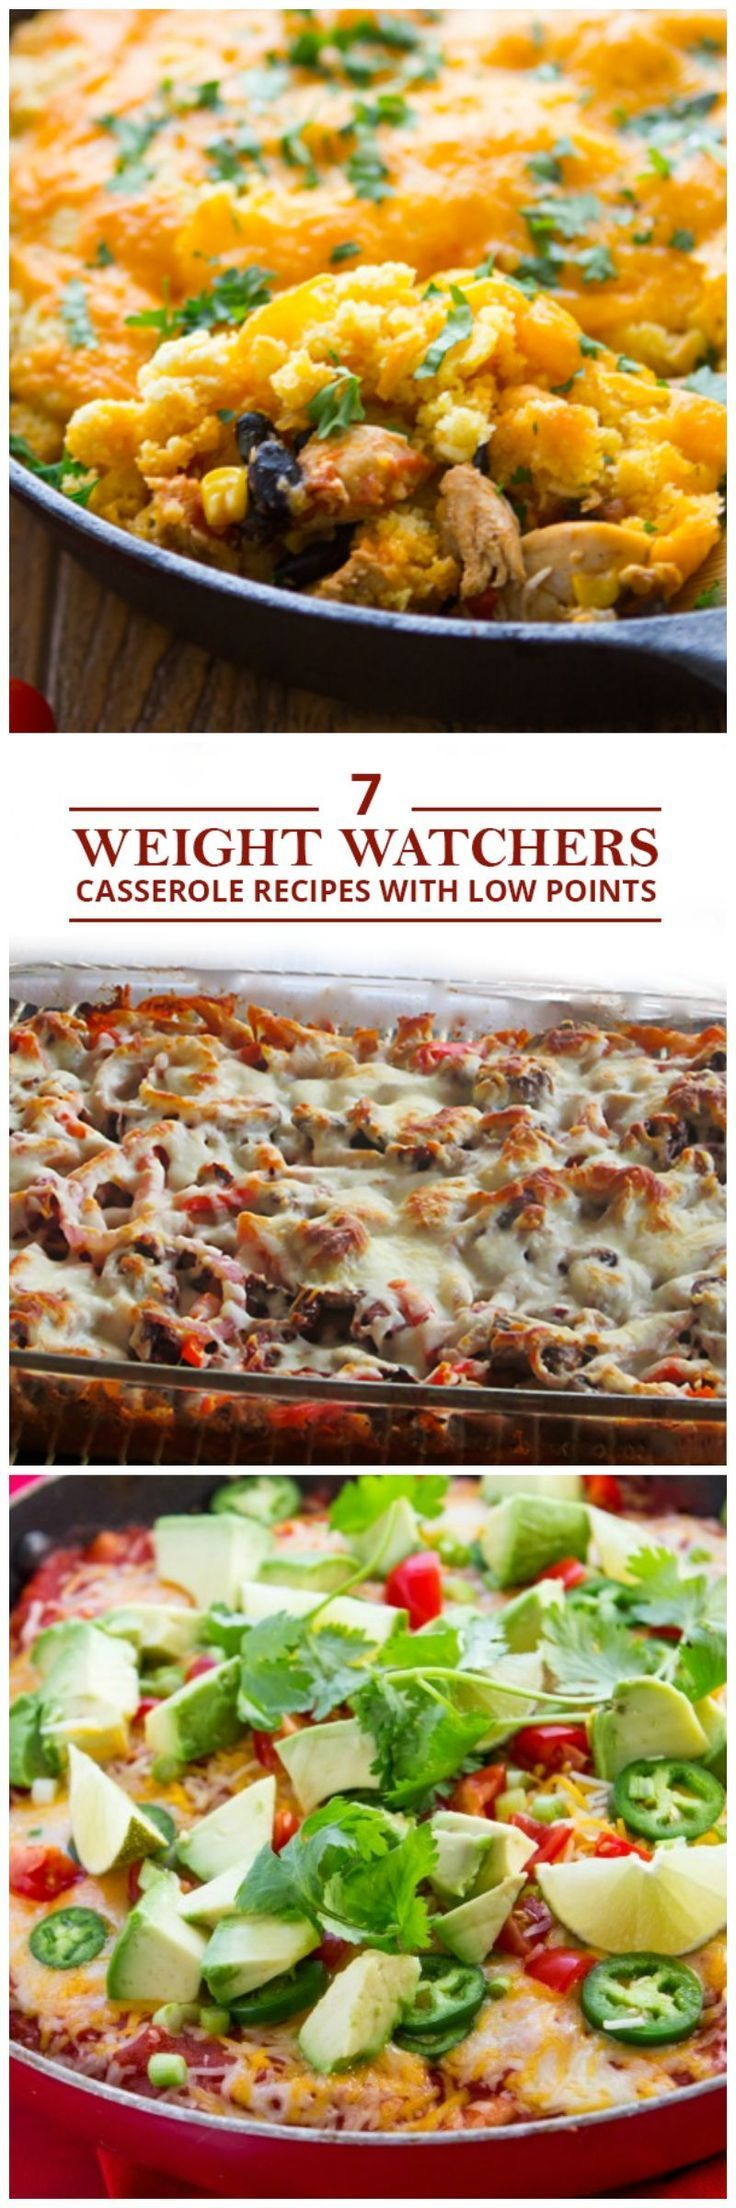 These healthy casserole recipes bring all the flavor without all the added fat. #weightwatchers